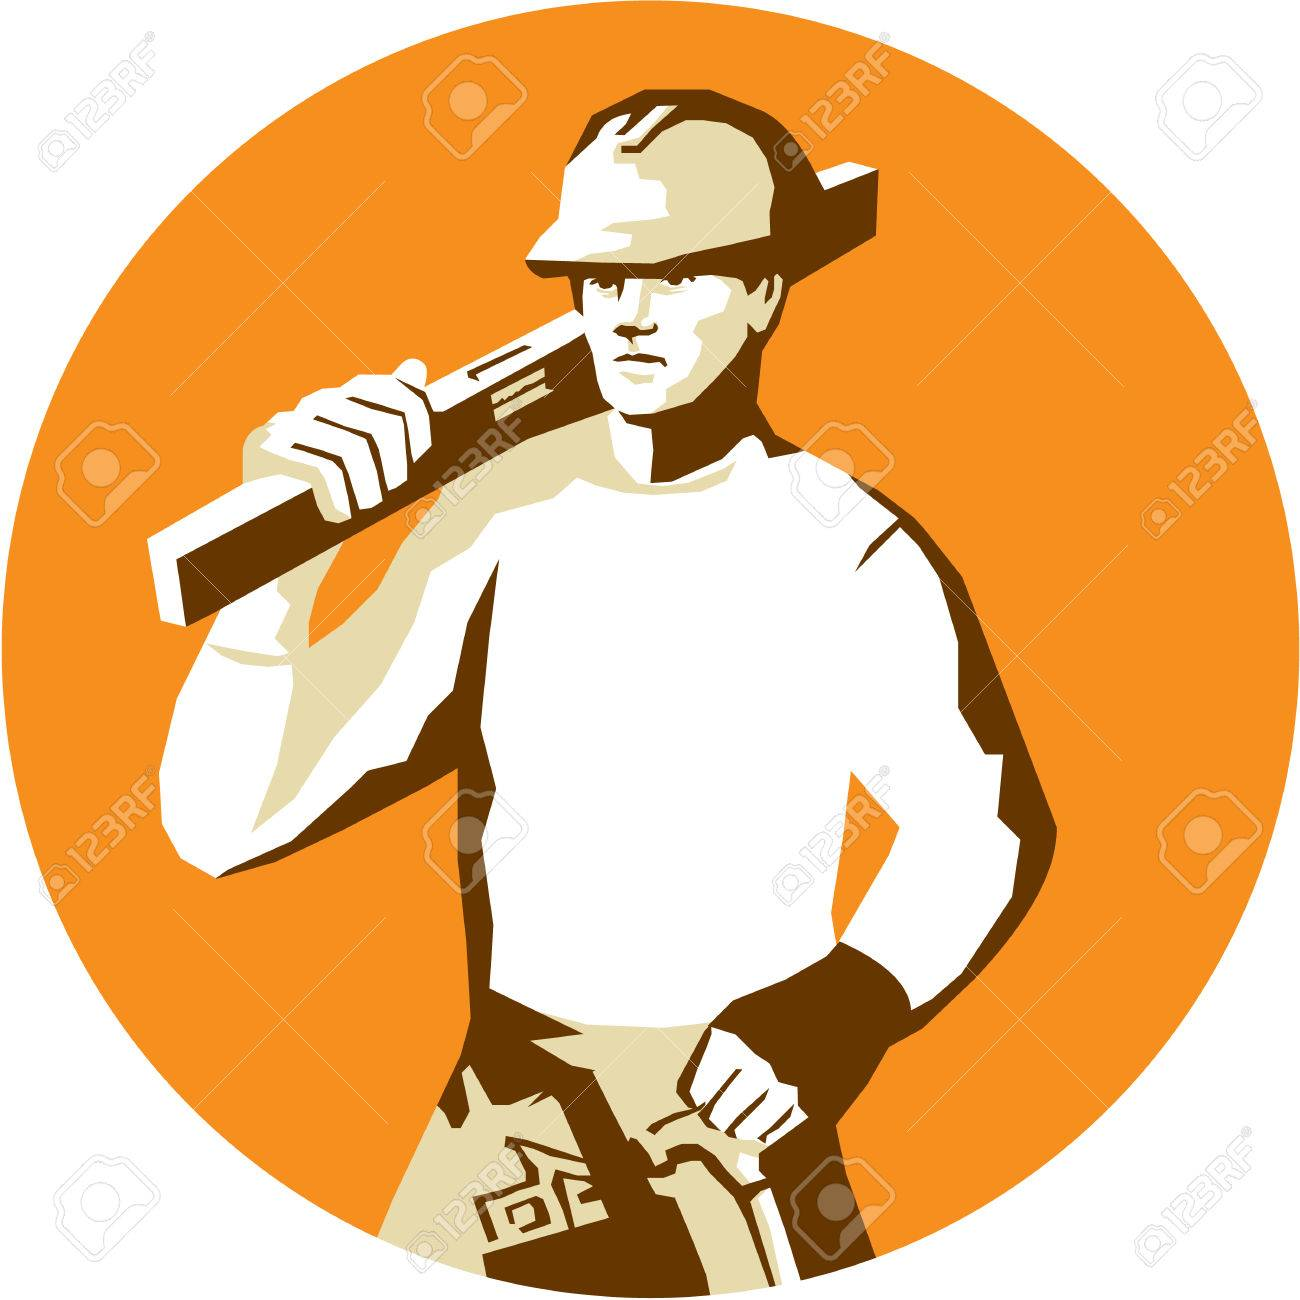 07470eabf16 Stencil style illustration of a builder construction worker with toolbelt  carrying spirit level on shoulder set